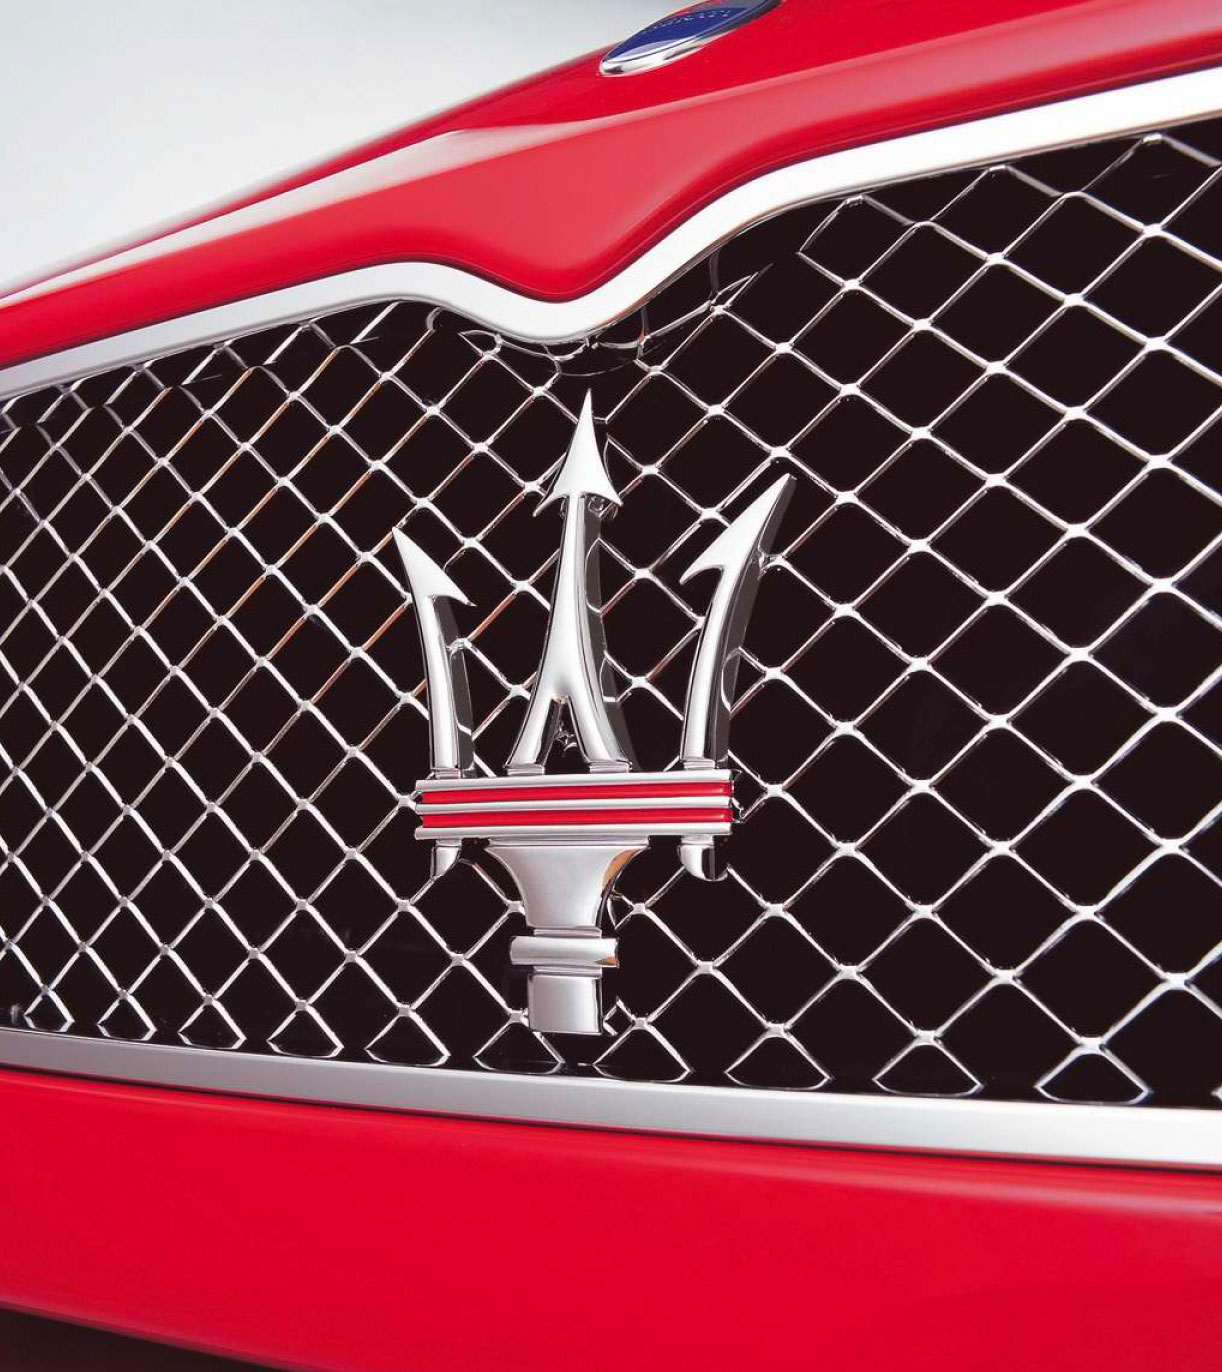 Car Model Logos And Names >> Maserati Logo, Maserati Car Symbol Meaning and History | Car Brand Names.com